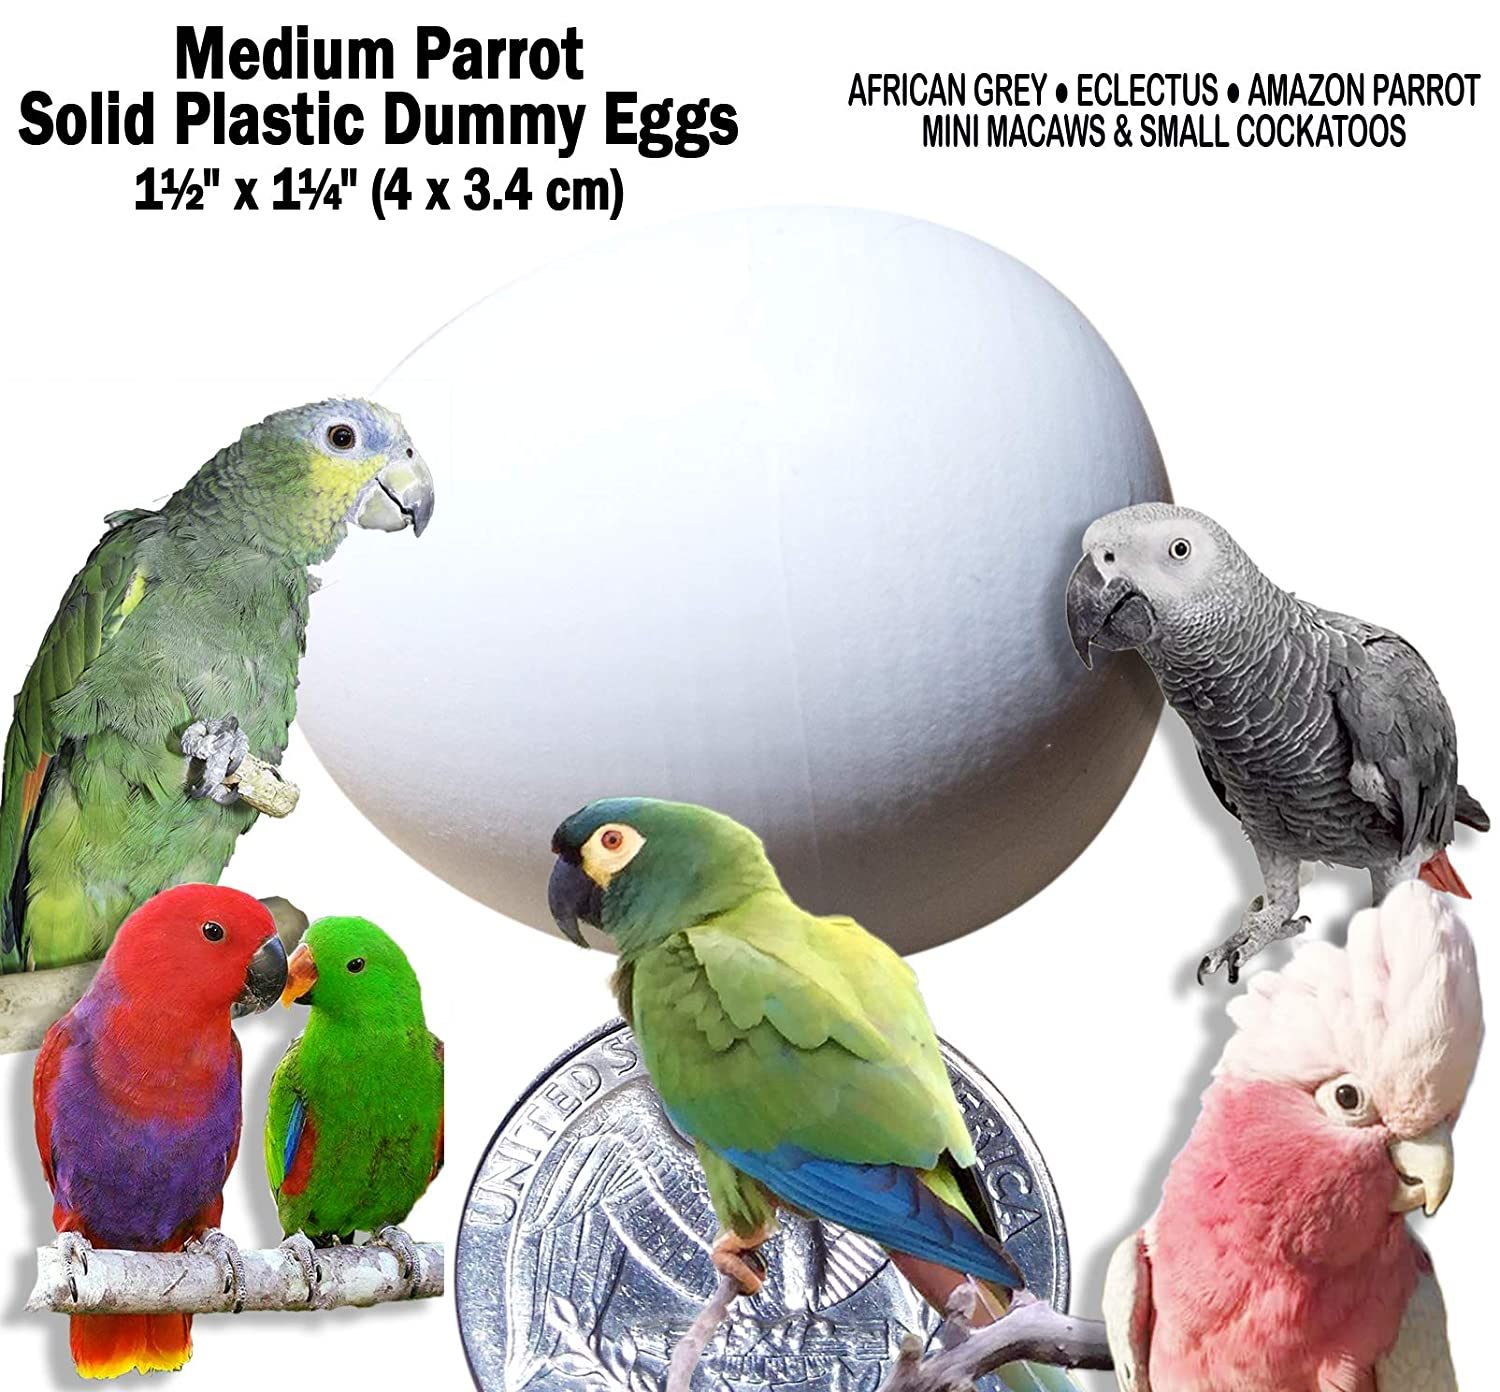 "DummyEggs Med Parrot African Grey, Eclectus, Amazon, Small Cockatoo or Macaw. Realistic Solid White Plastic 1.5"" x 1.25"" (4 x 3.4 cm) Fake Eggs Control Laying!"